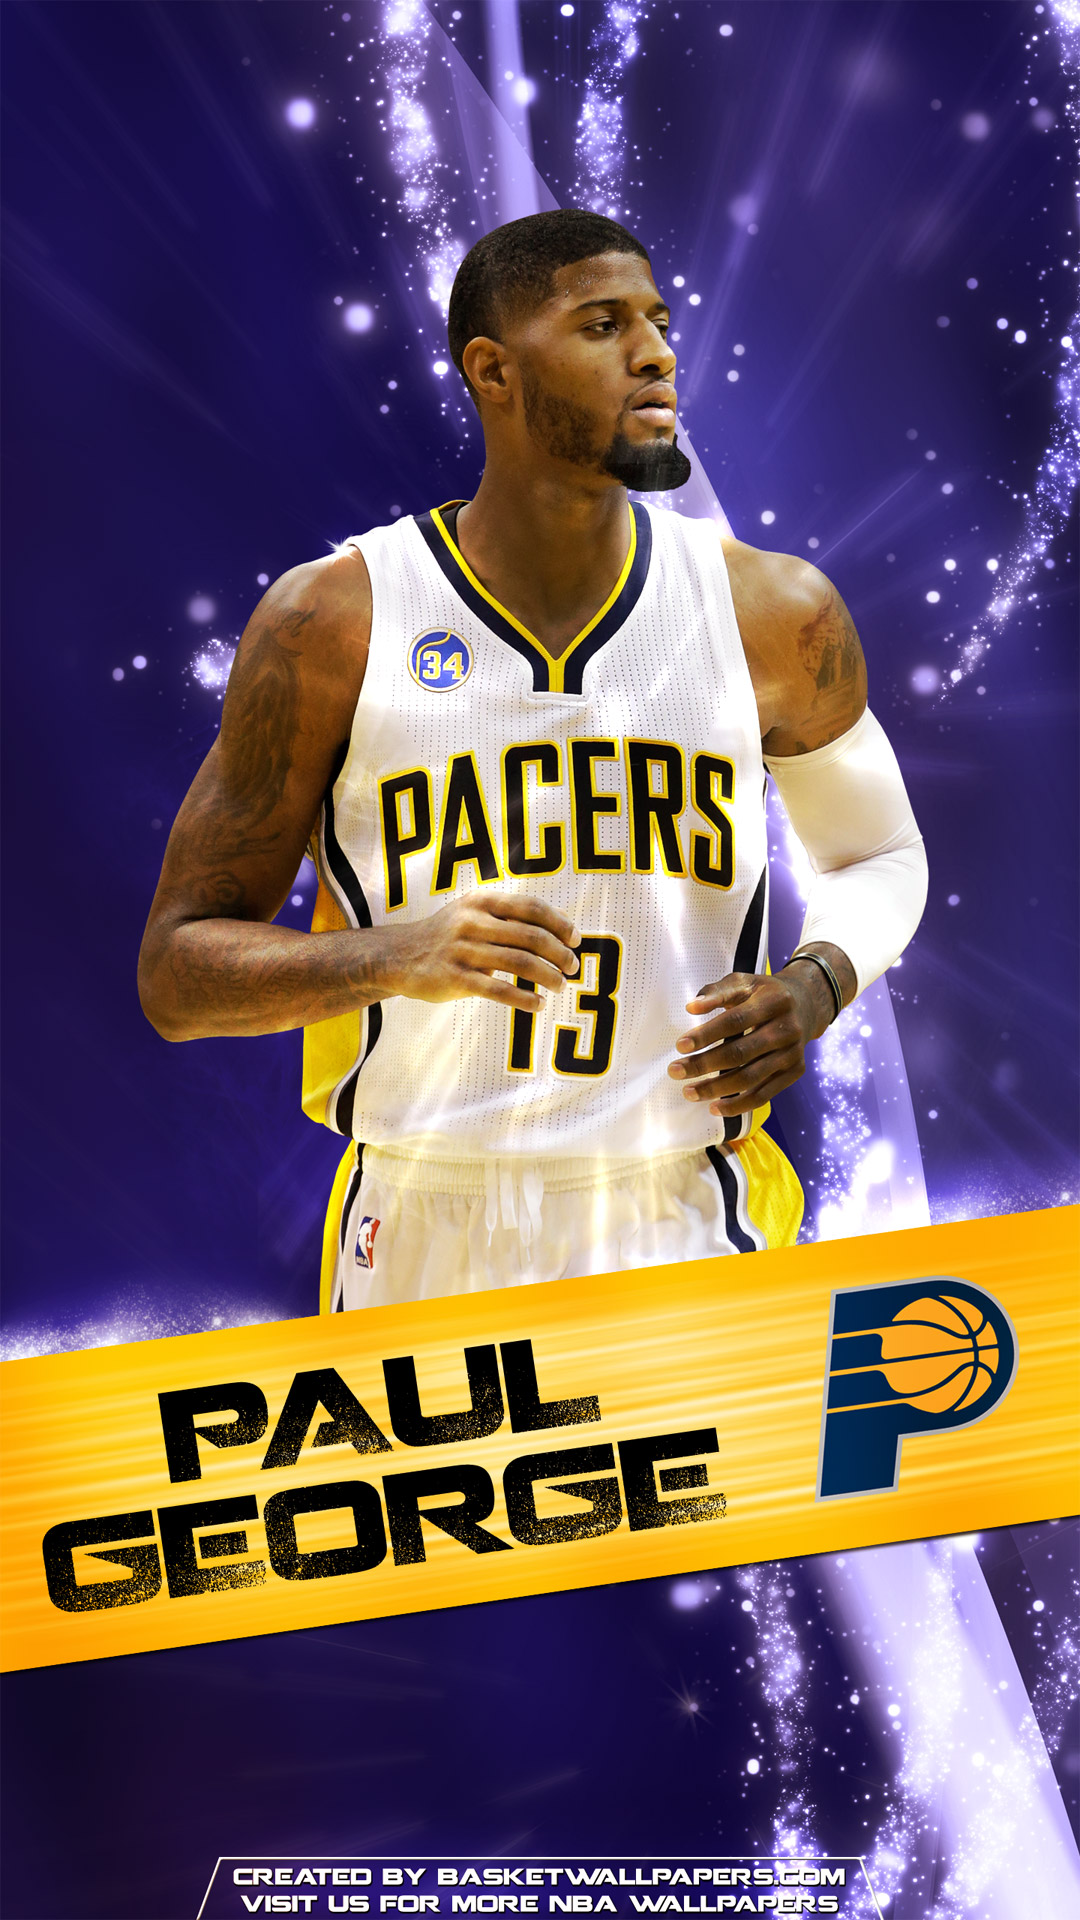 Golden State Wallpaper Iphone Paul George Indiana Pacers 2016 Mobile Wallpaper